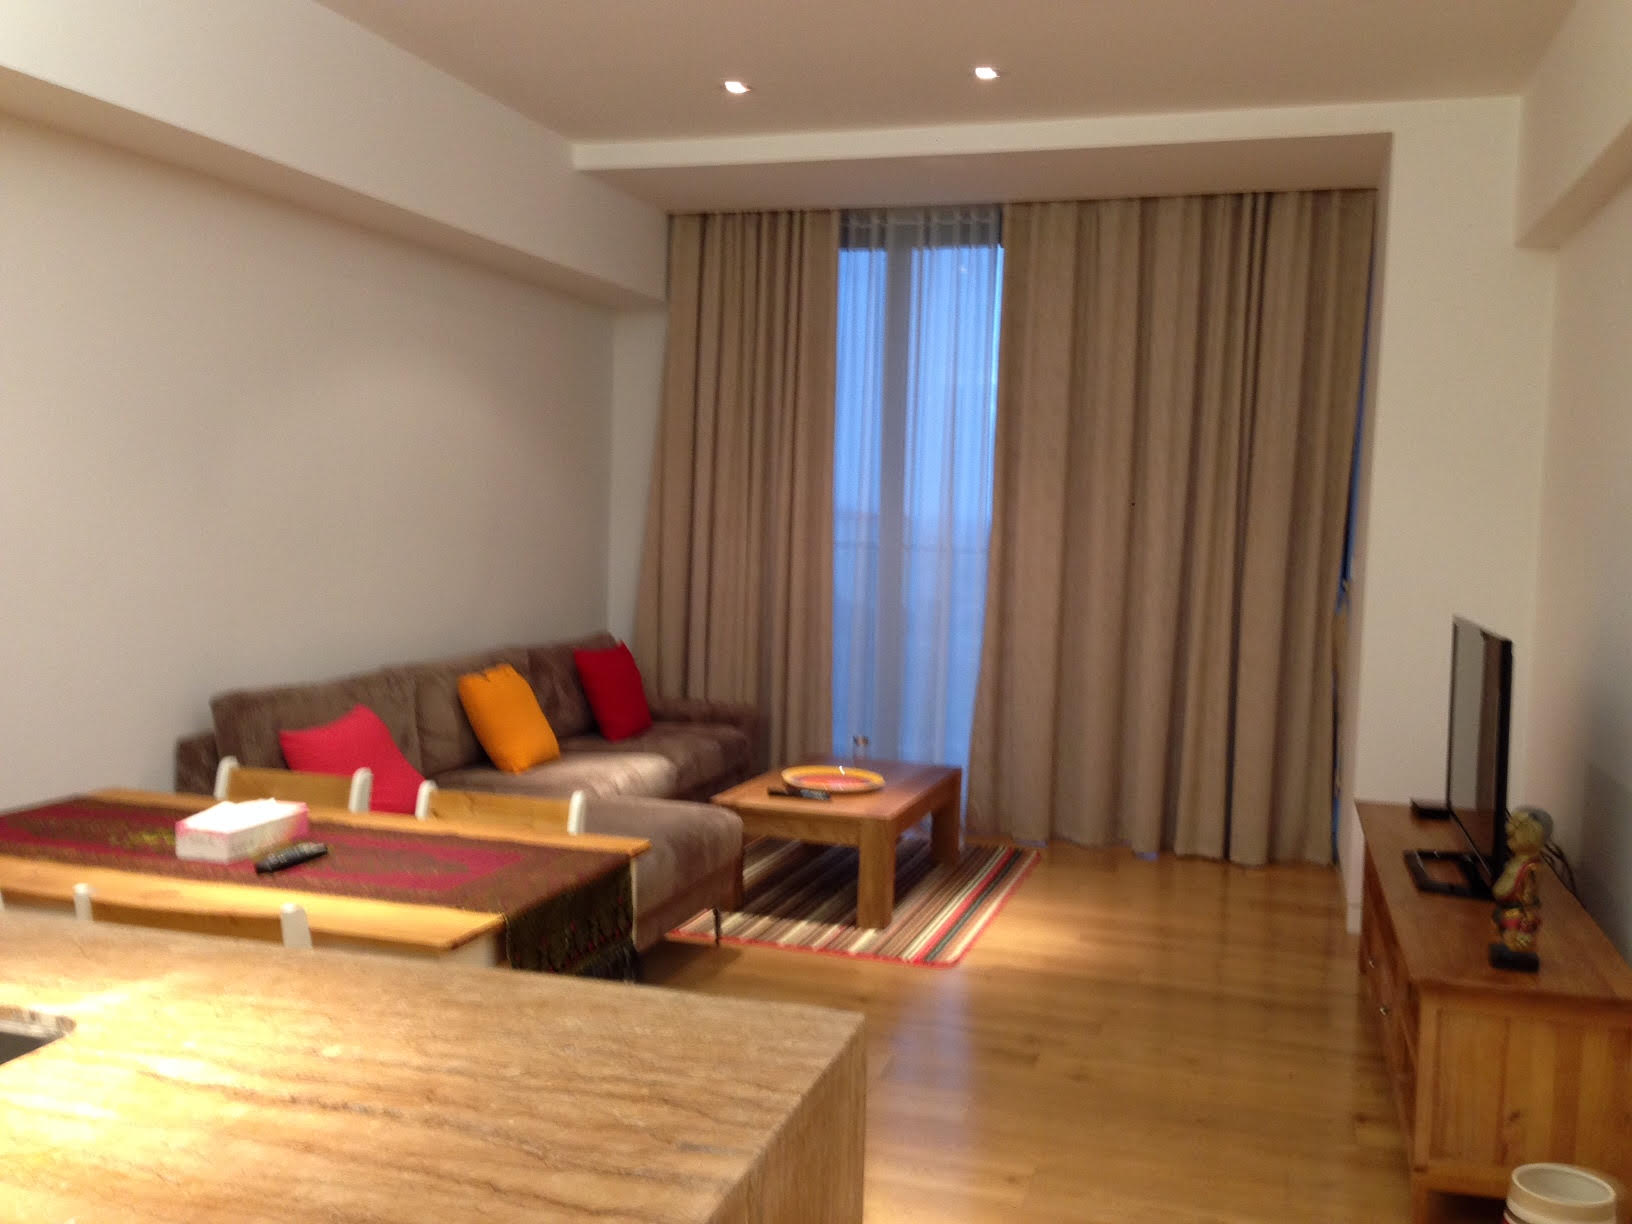 Apartment Indochina Hanoi for rent with 2 bedrooms